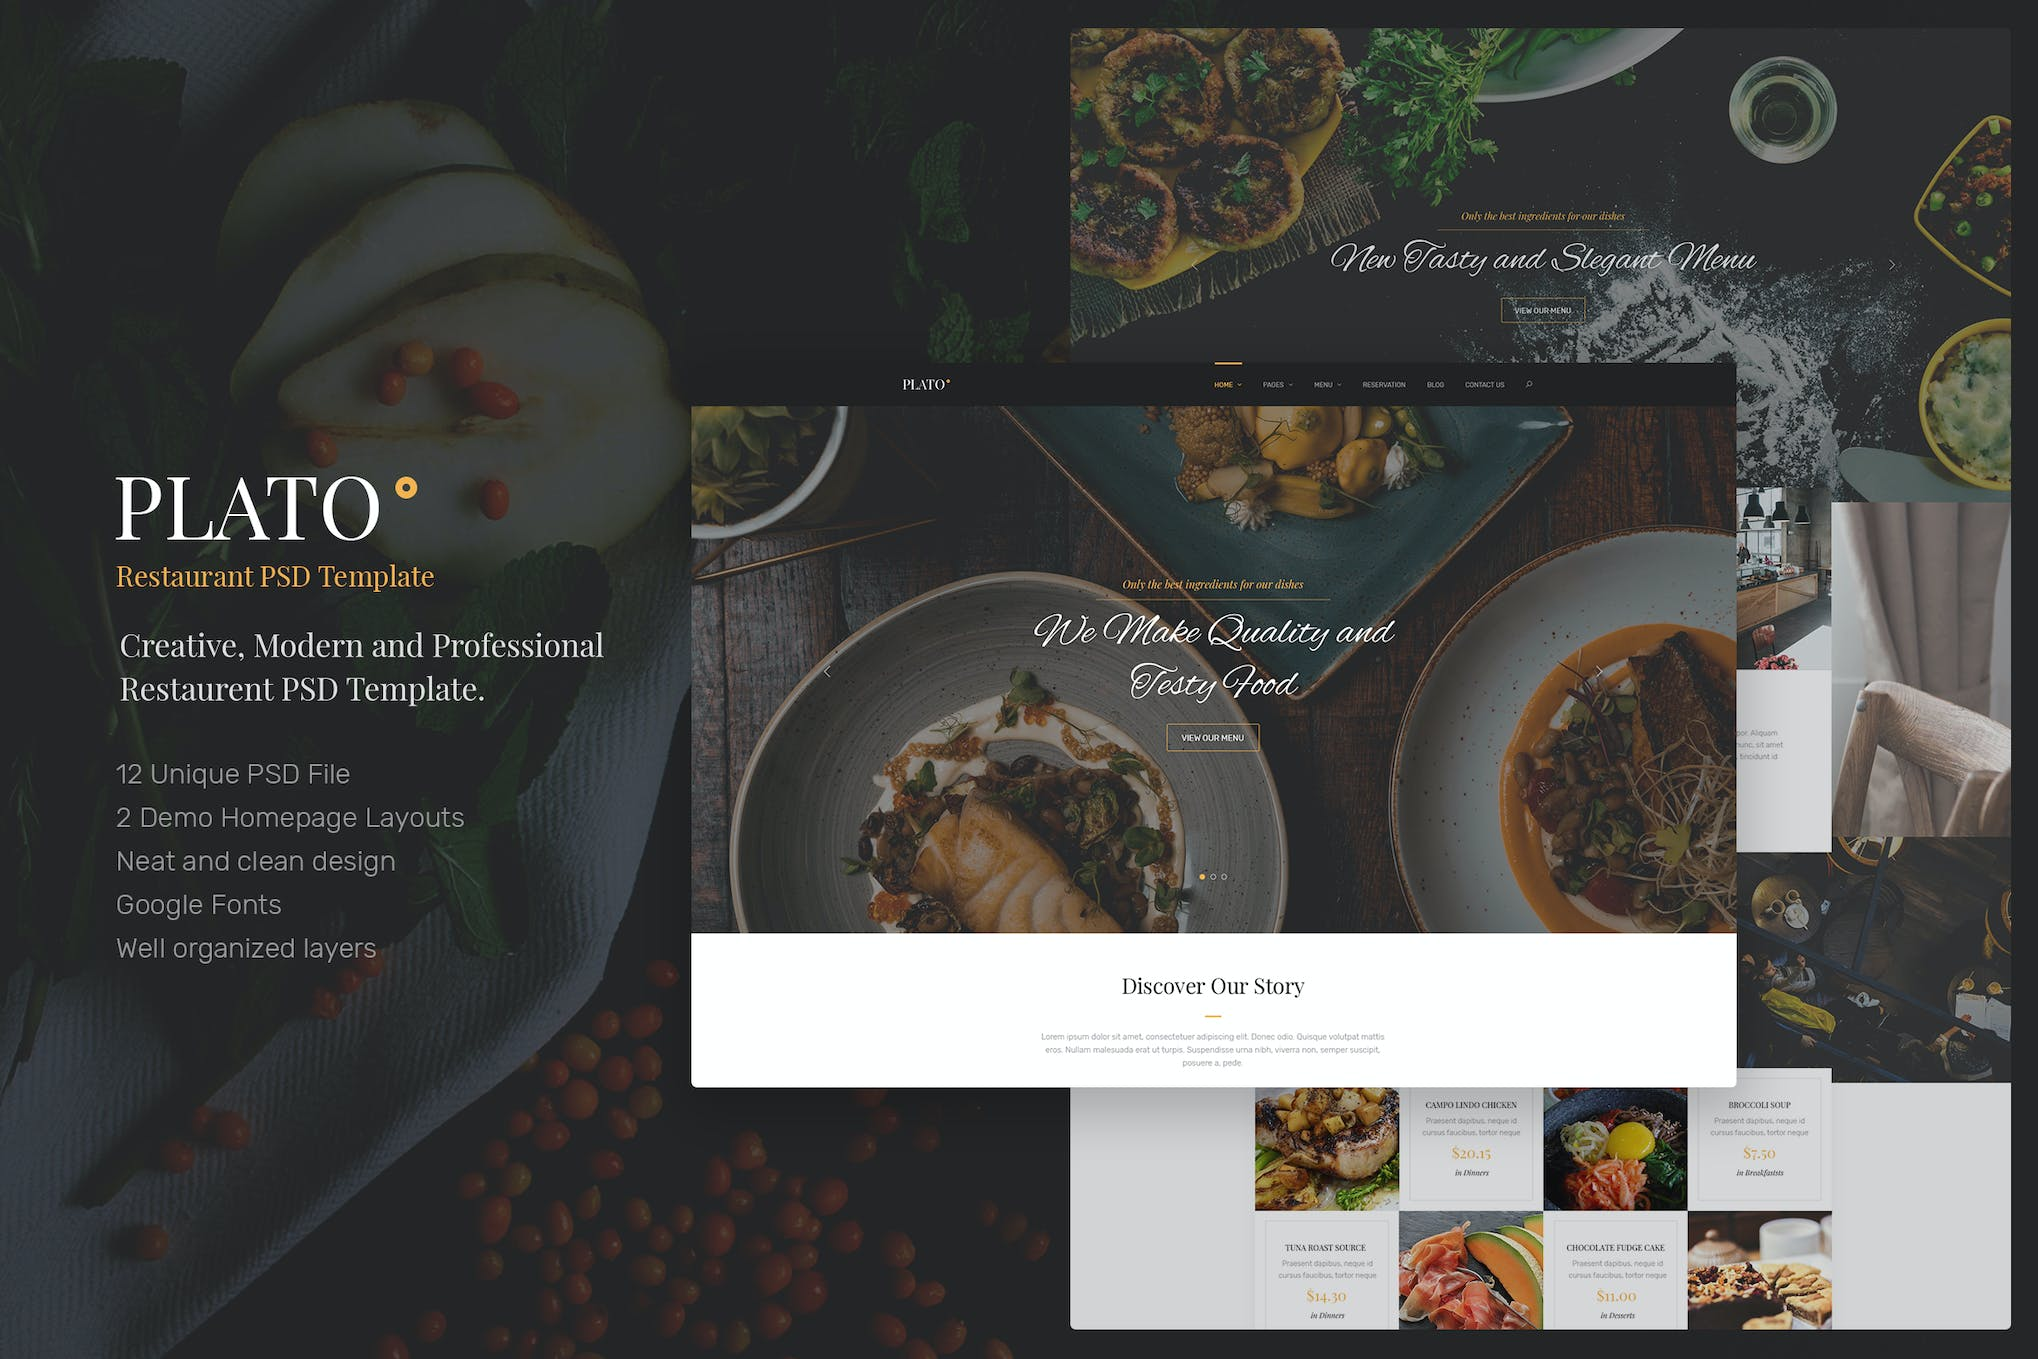 Plato - Restaurant PSD Templates by upifix on Envato Elements